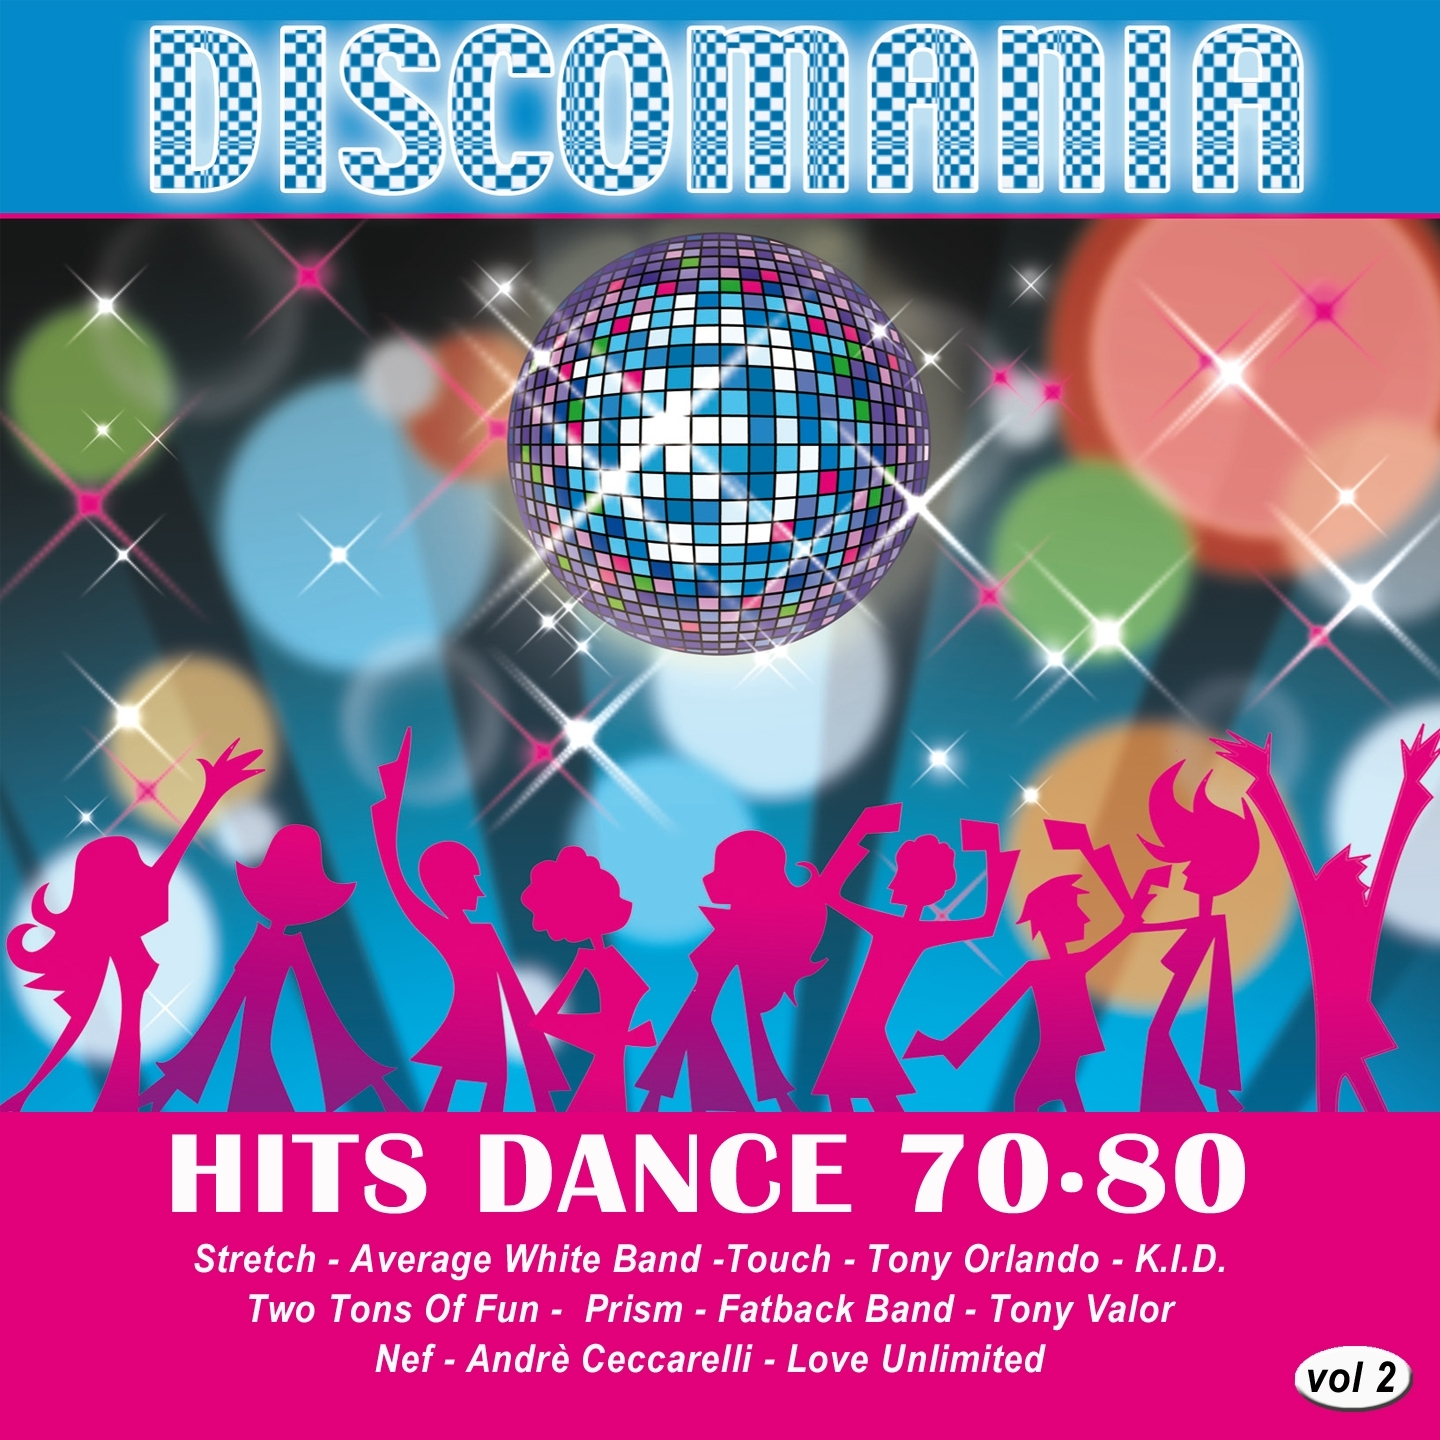 Discomania: Hits Dance 70-80, Vol. 2